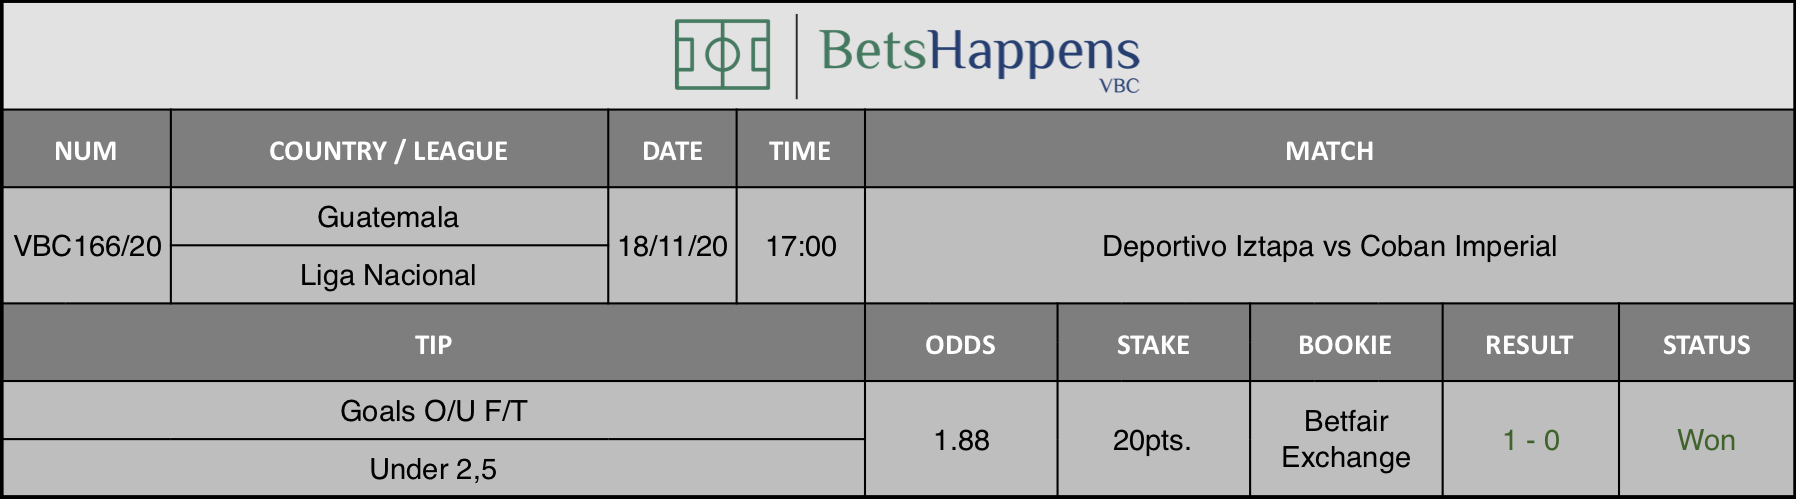 Results of our tip for the Deportivo Iztapa vs Coban Imperial match where Goals O/U F/T Under 2,5 is recommended.